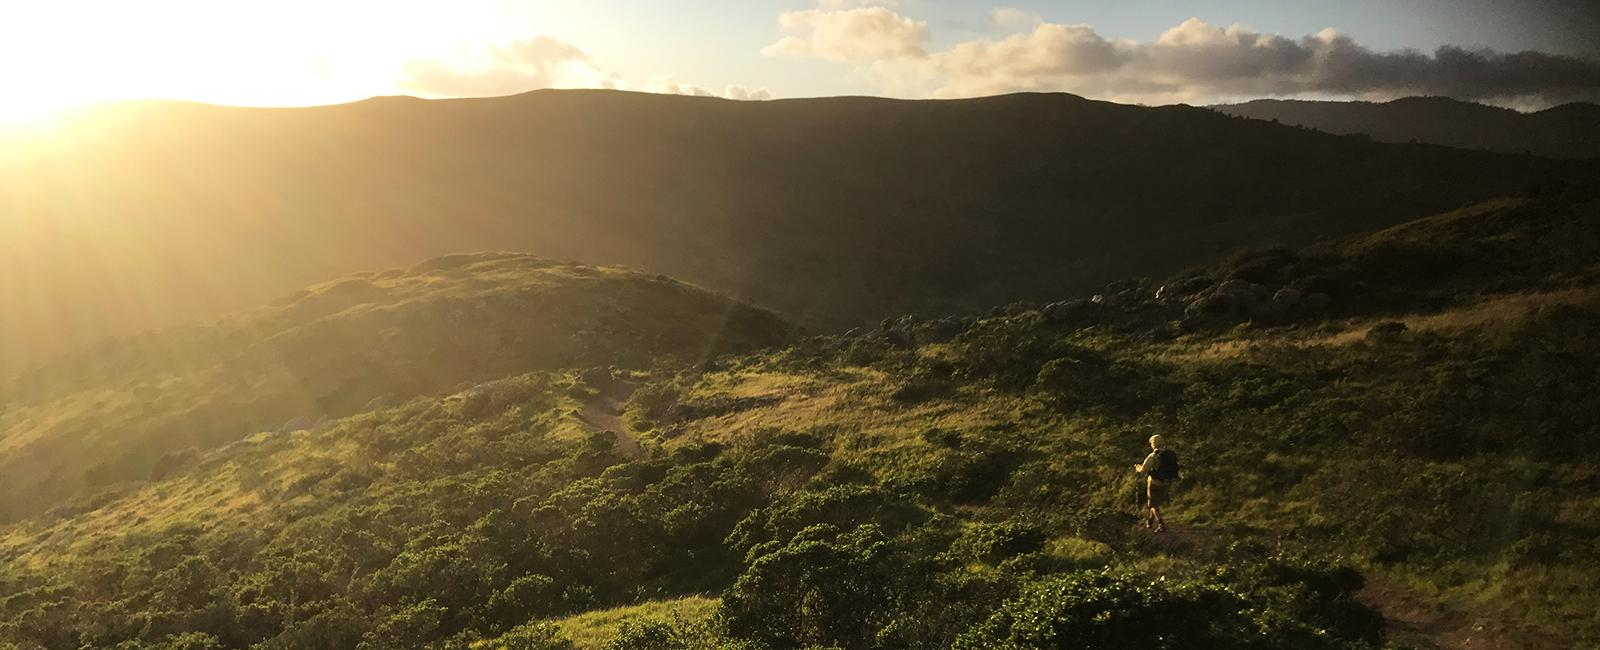 Hiking down into Tennessee Valley